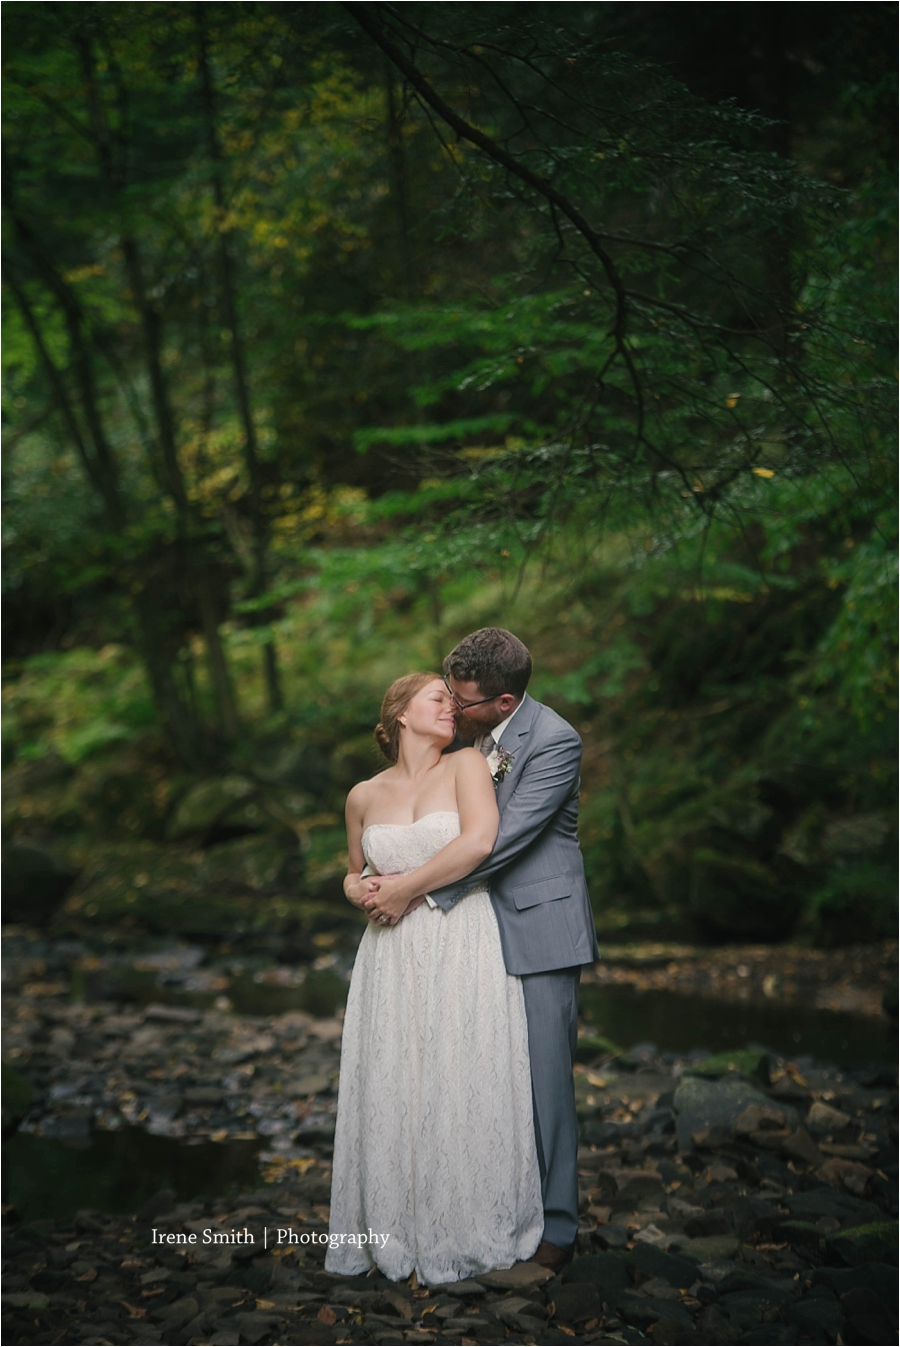 Cooks-Forest-Wedding-Photography-Irene-Smith_0018.jpg